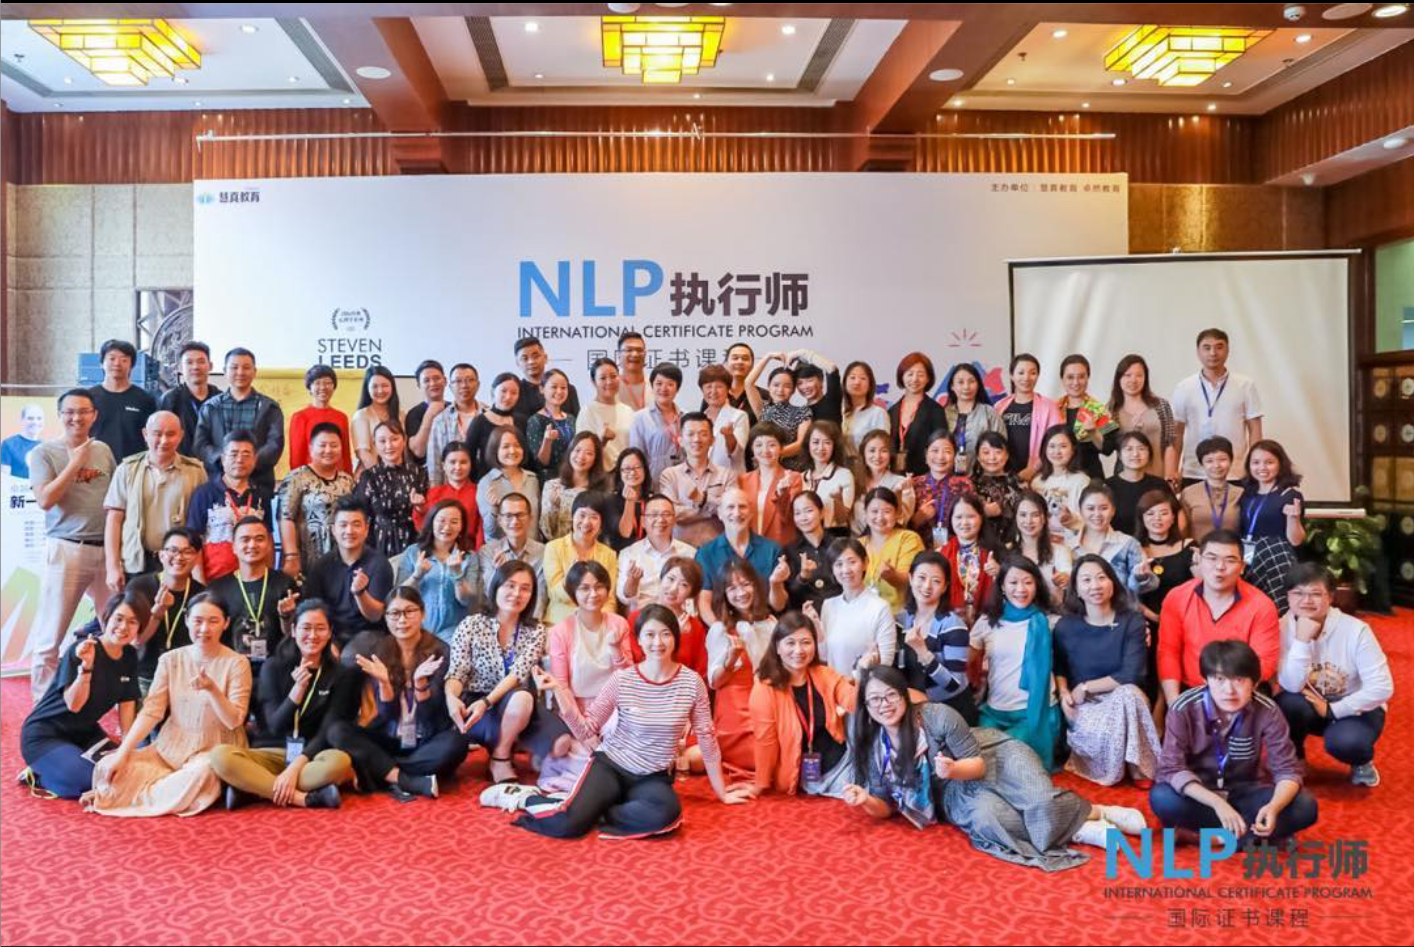 The_NLP_Center_Of_New_York___nlptraining__•_Instagram_photos_and_videos